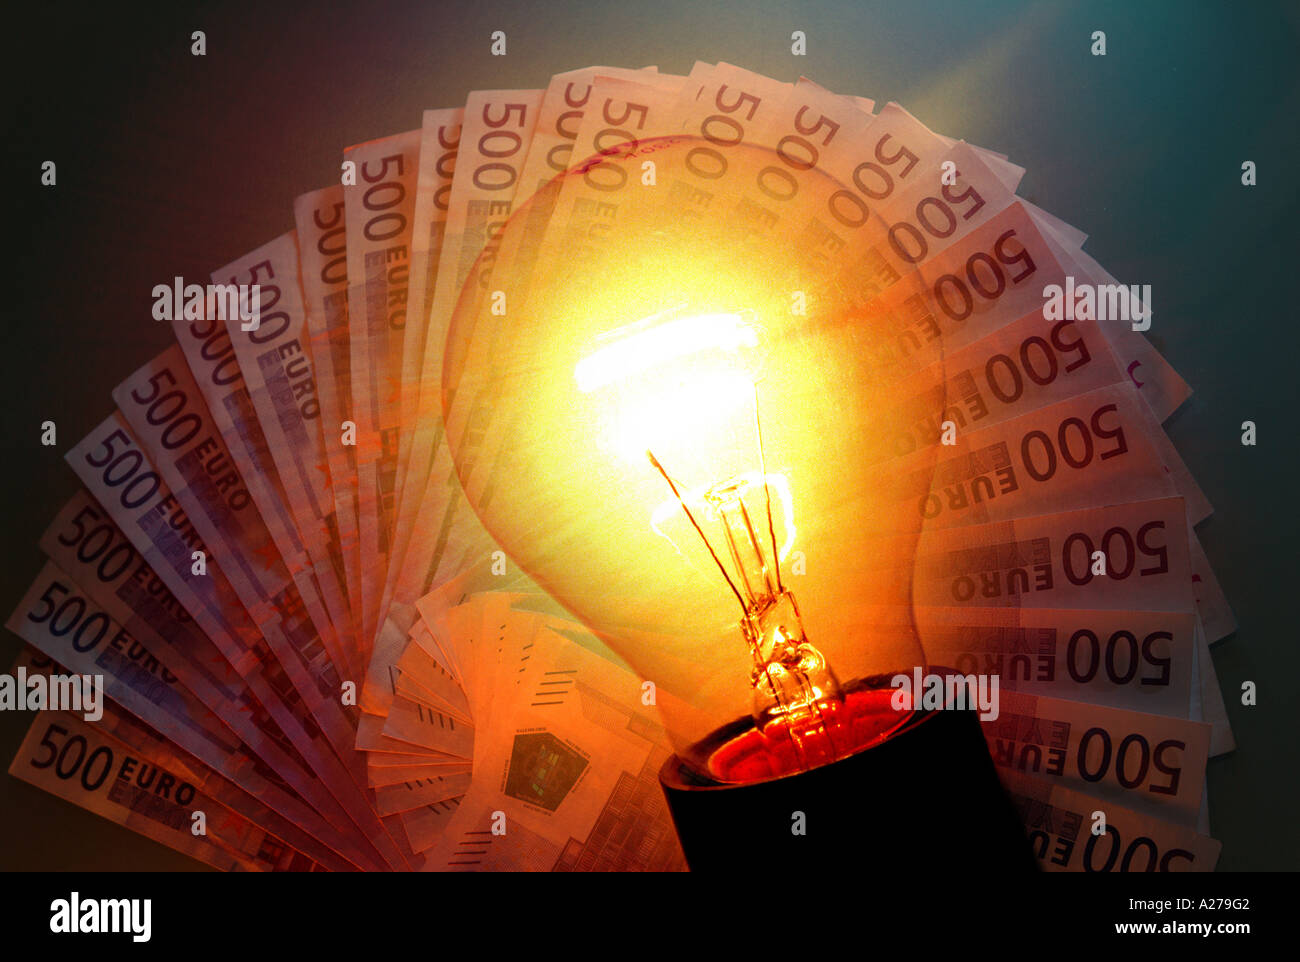 costs of energy price of electricity burning electric light bulb with big bank notes 500 euro notes in background - Stock Image